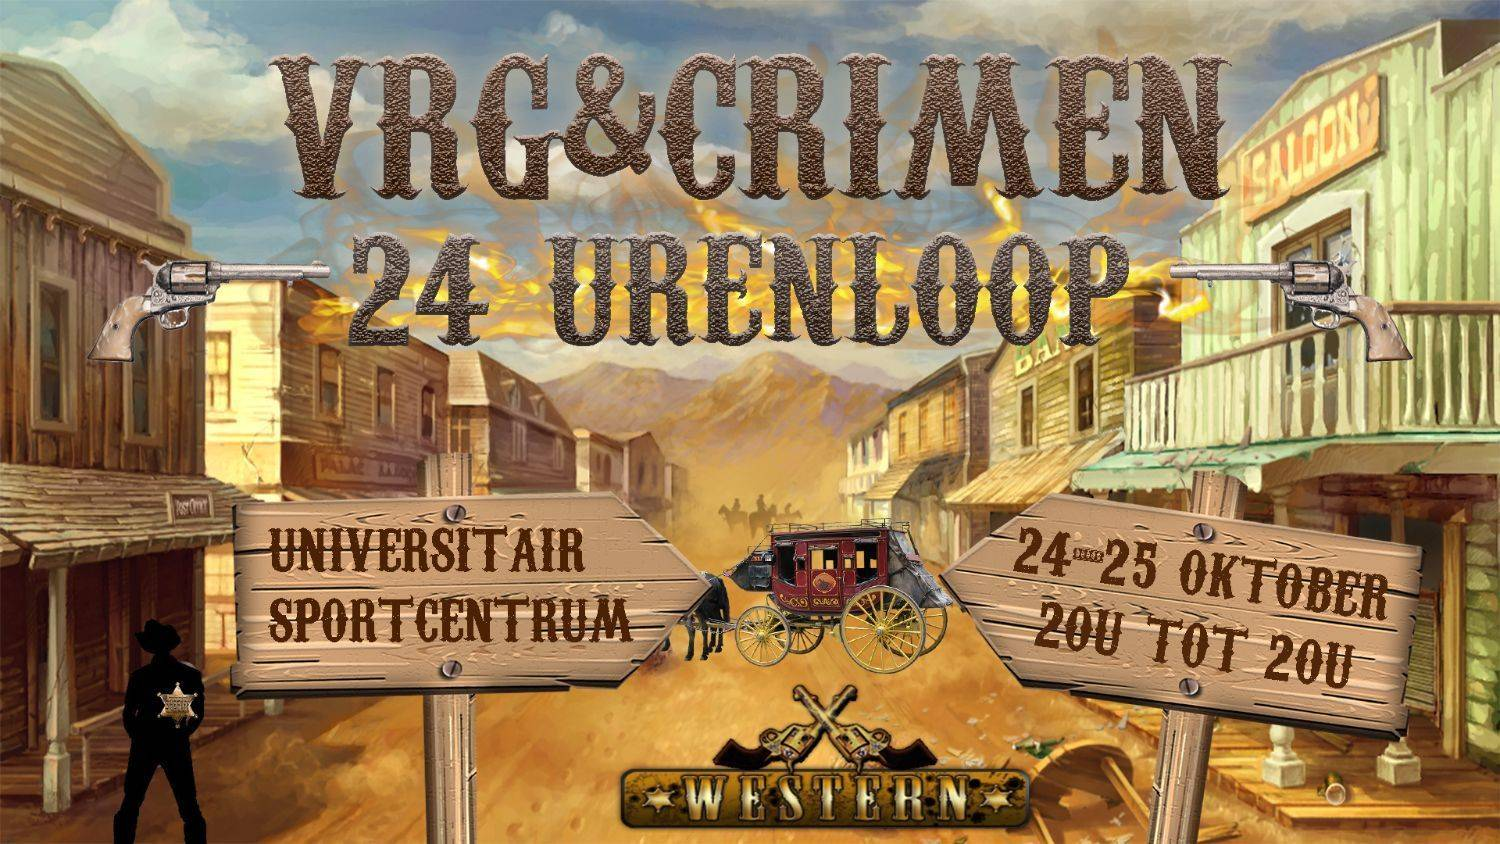 VRG&Crimen at 24 urenloop 2017